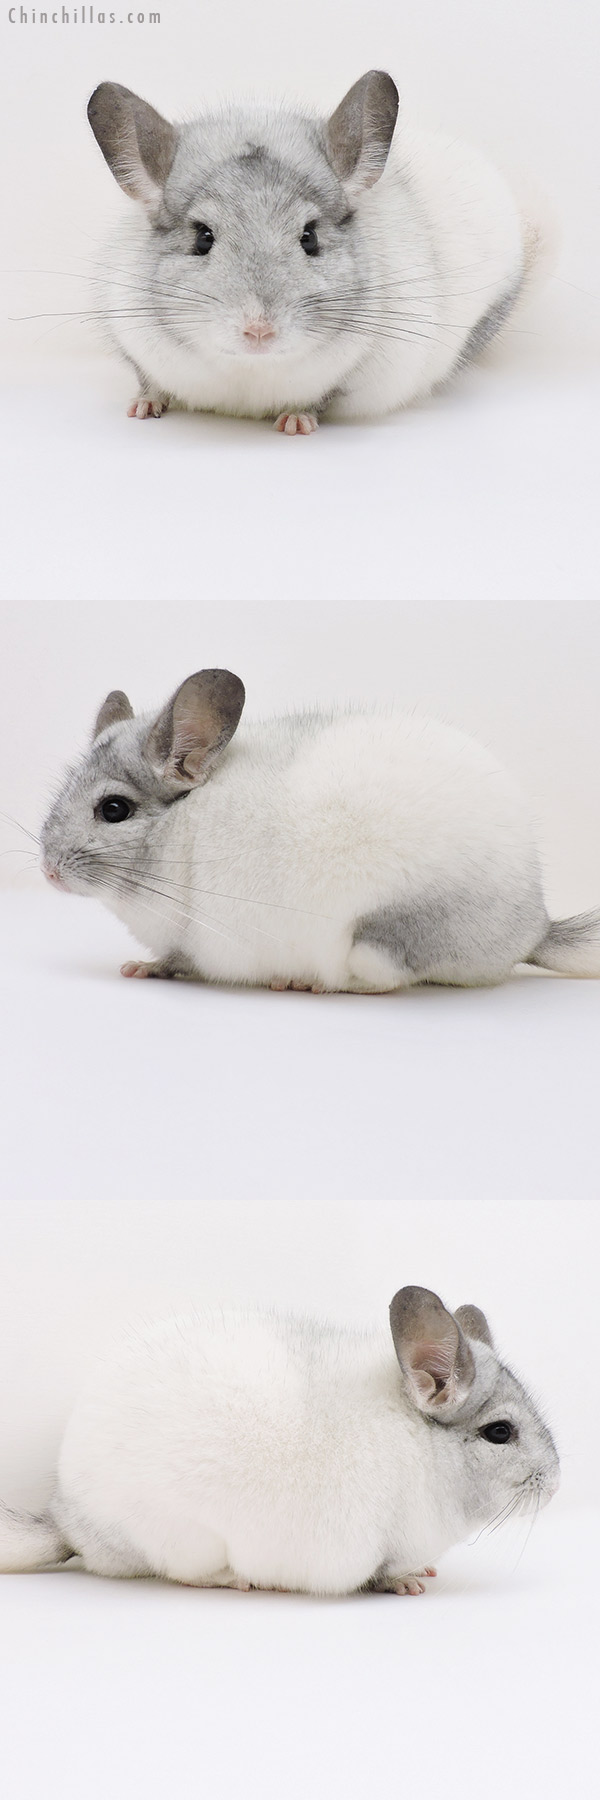 17054 Blocky Show Quality White Mosaic Male Chinchilla